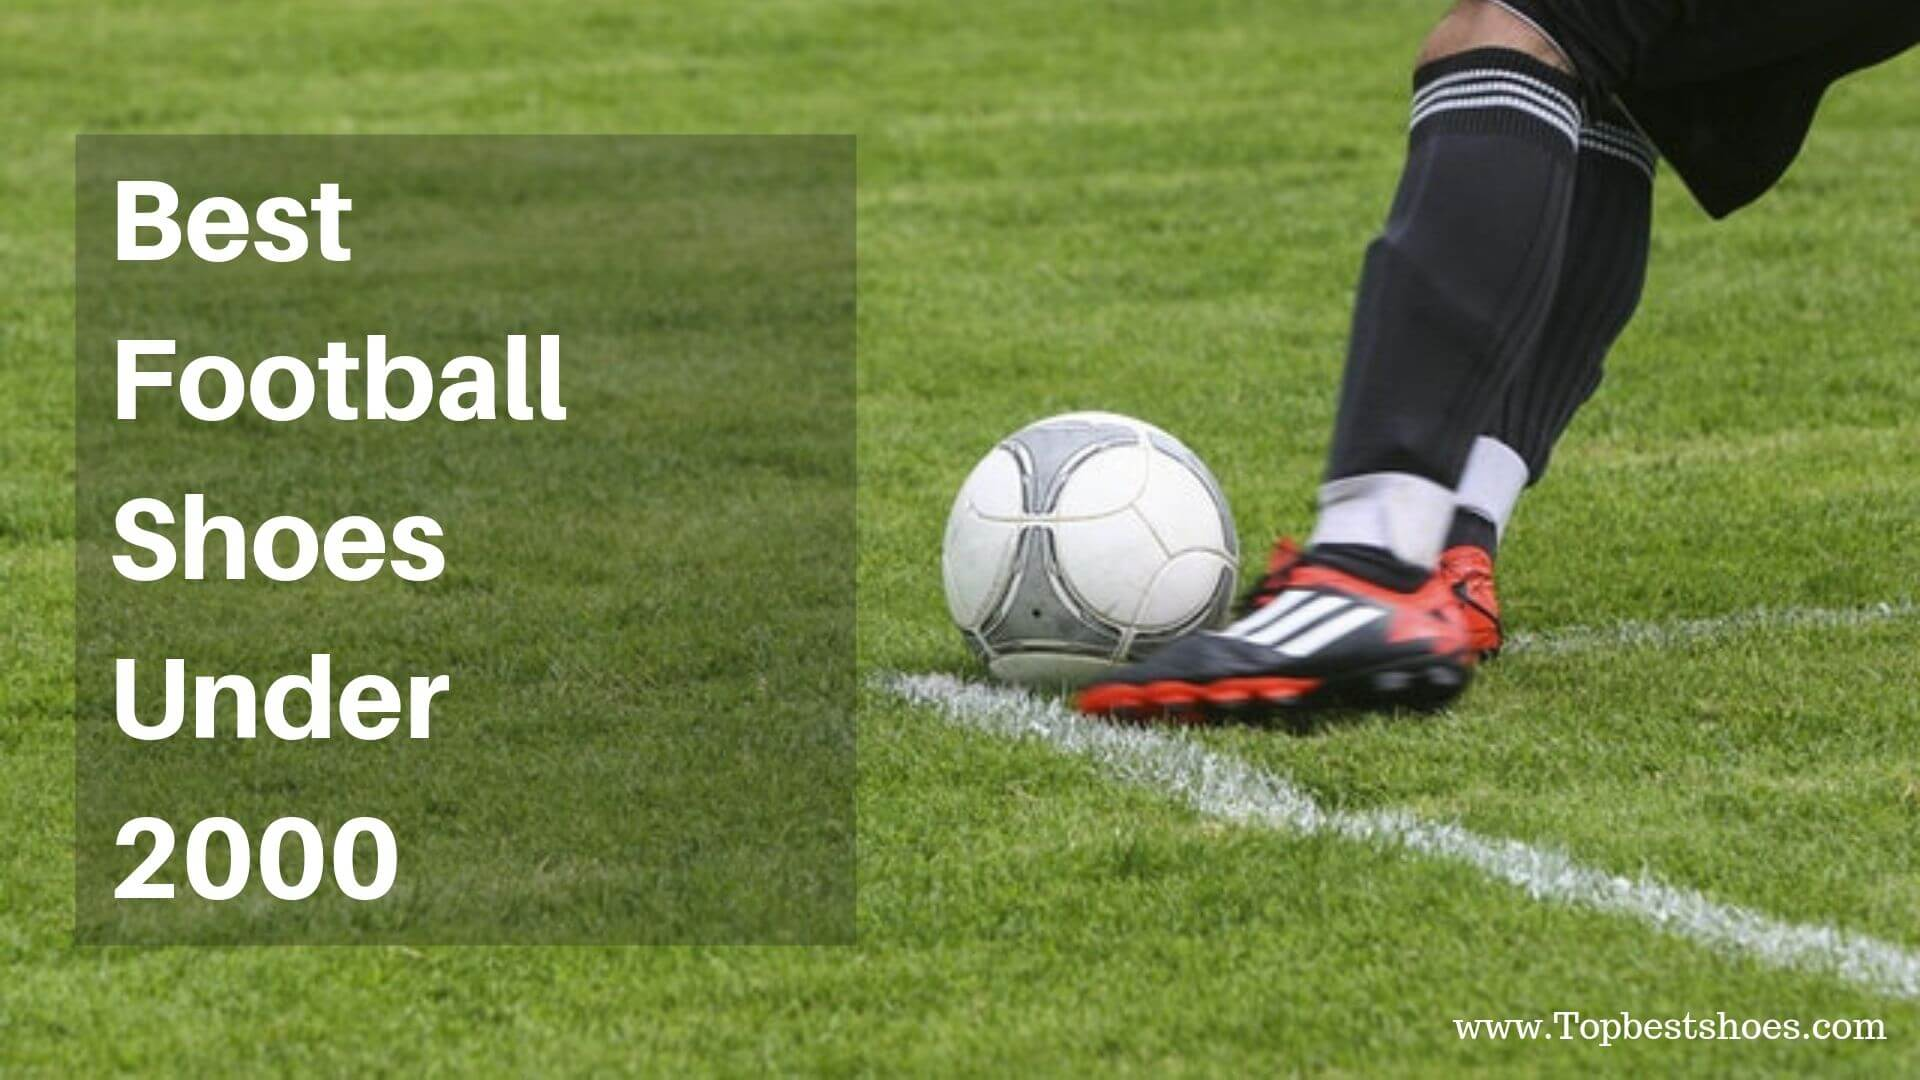 Top 10 Best Football Shoes Under 2000 In India | 2019